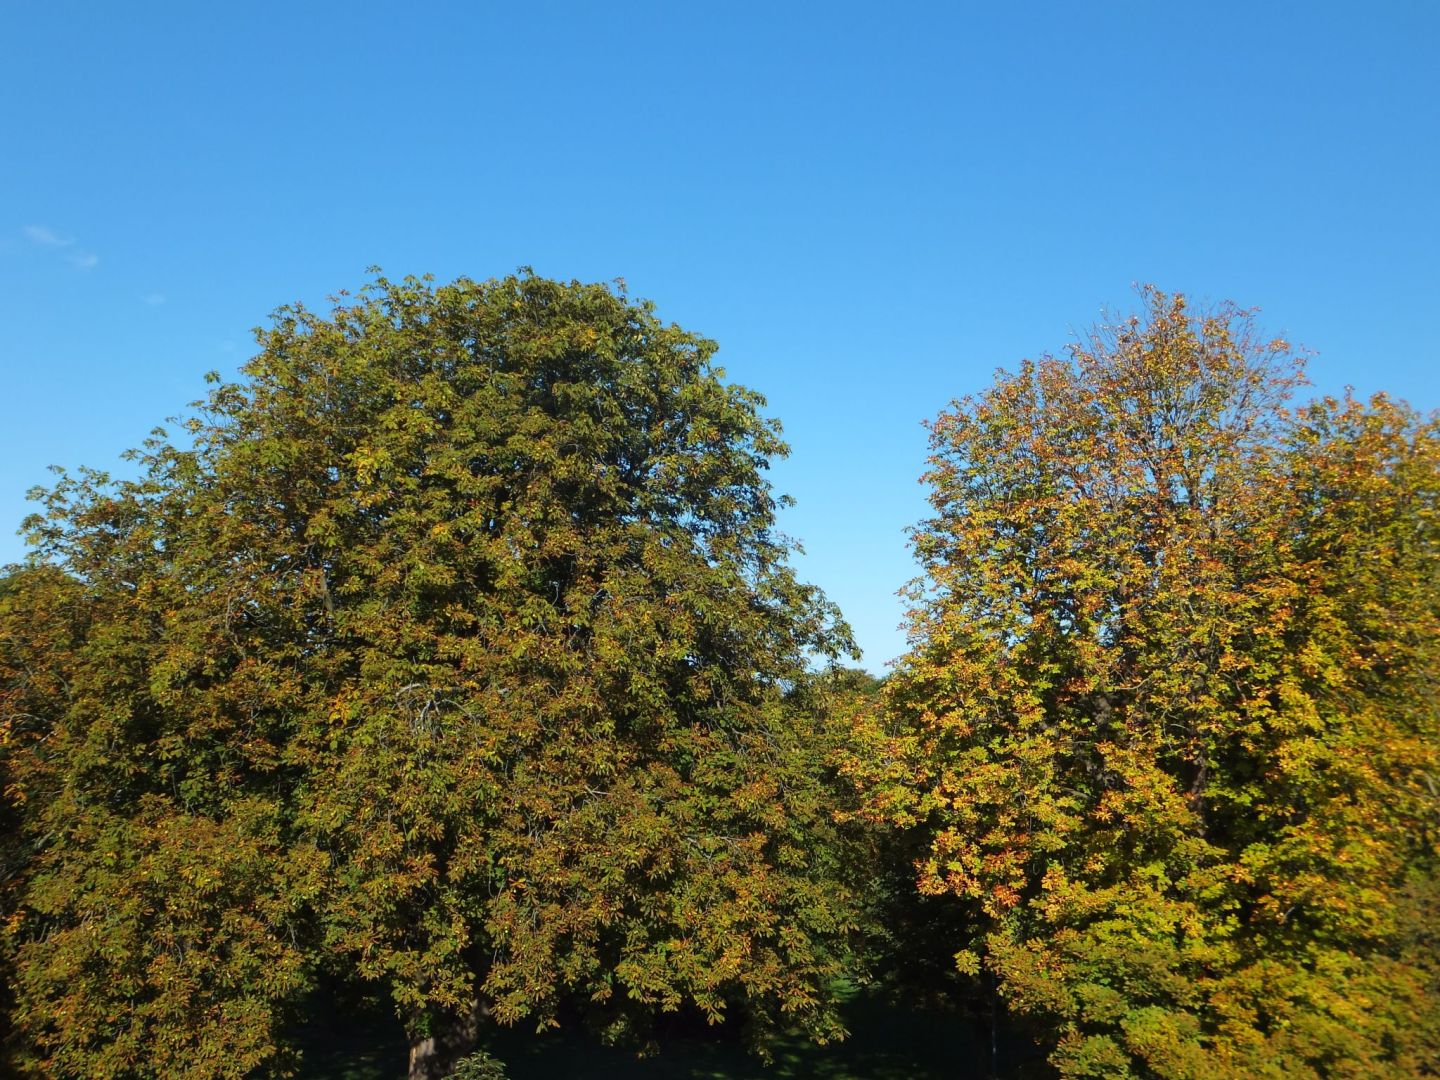 Autumnal trees